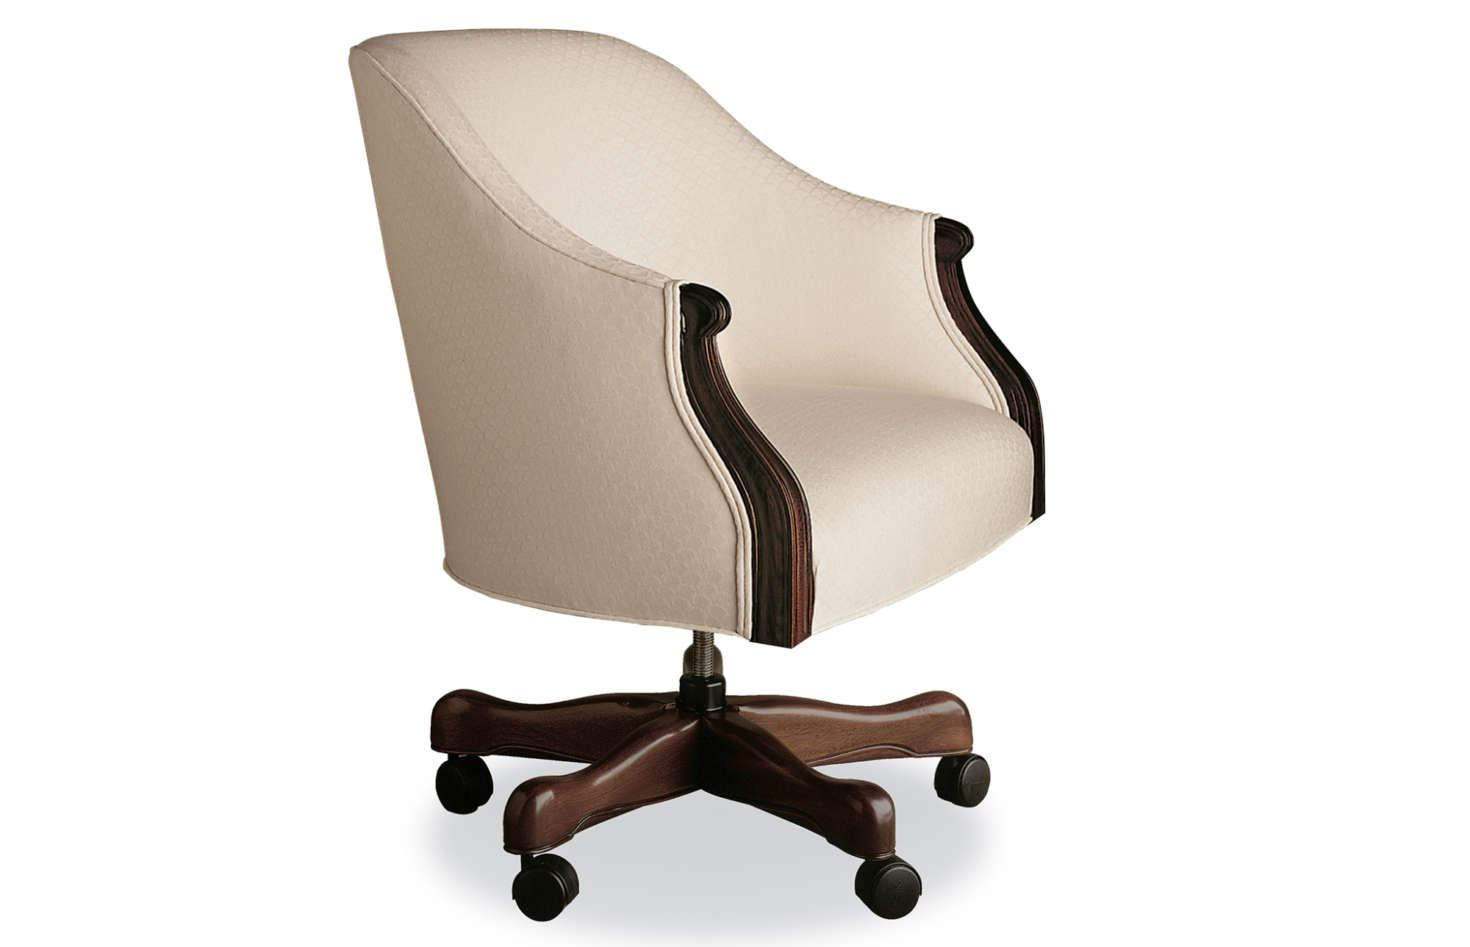 Tremendous Rockingham Swivel Tilt Chair Executive Seating Molded Lamtechconsult Wood Chair Design Ideas Lamtechconsultcom